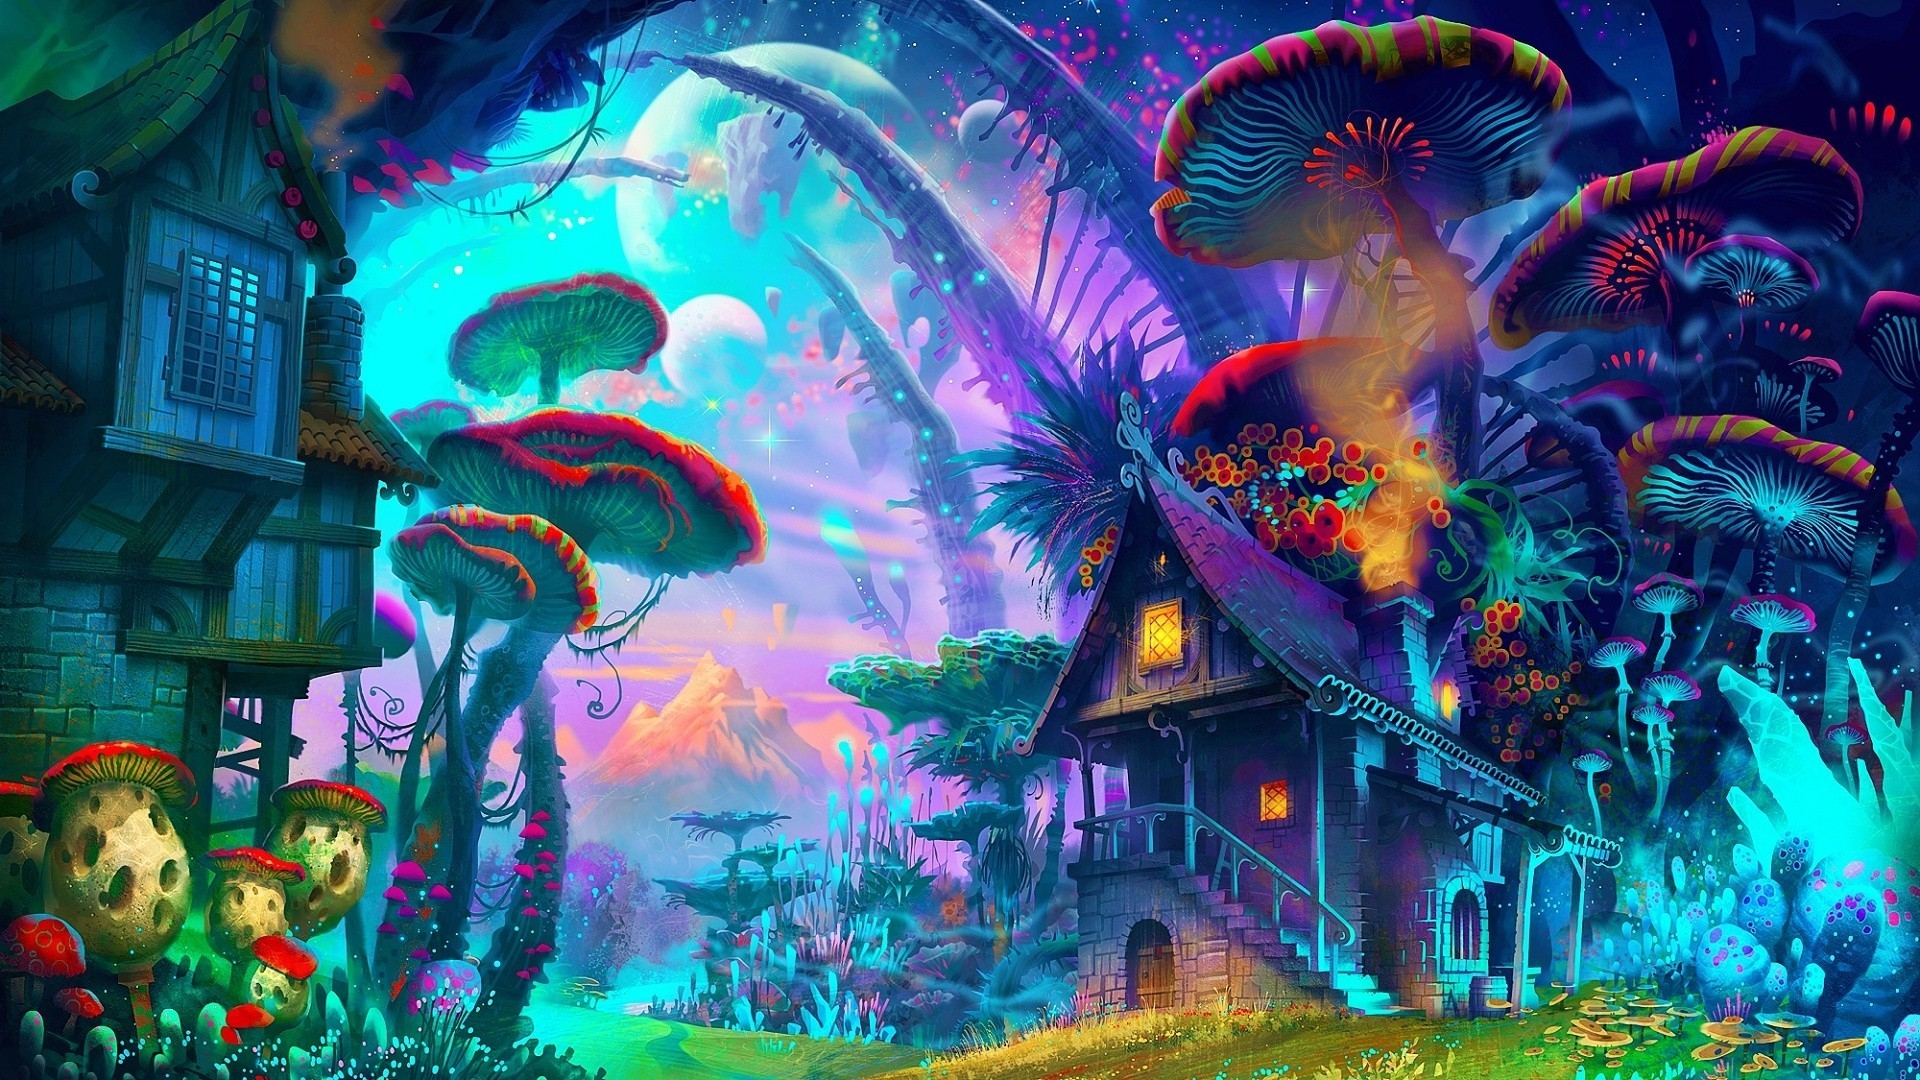 Trippy Wallpapers Hd: Trippy Shroom Wallpaper (65+ Images